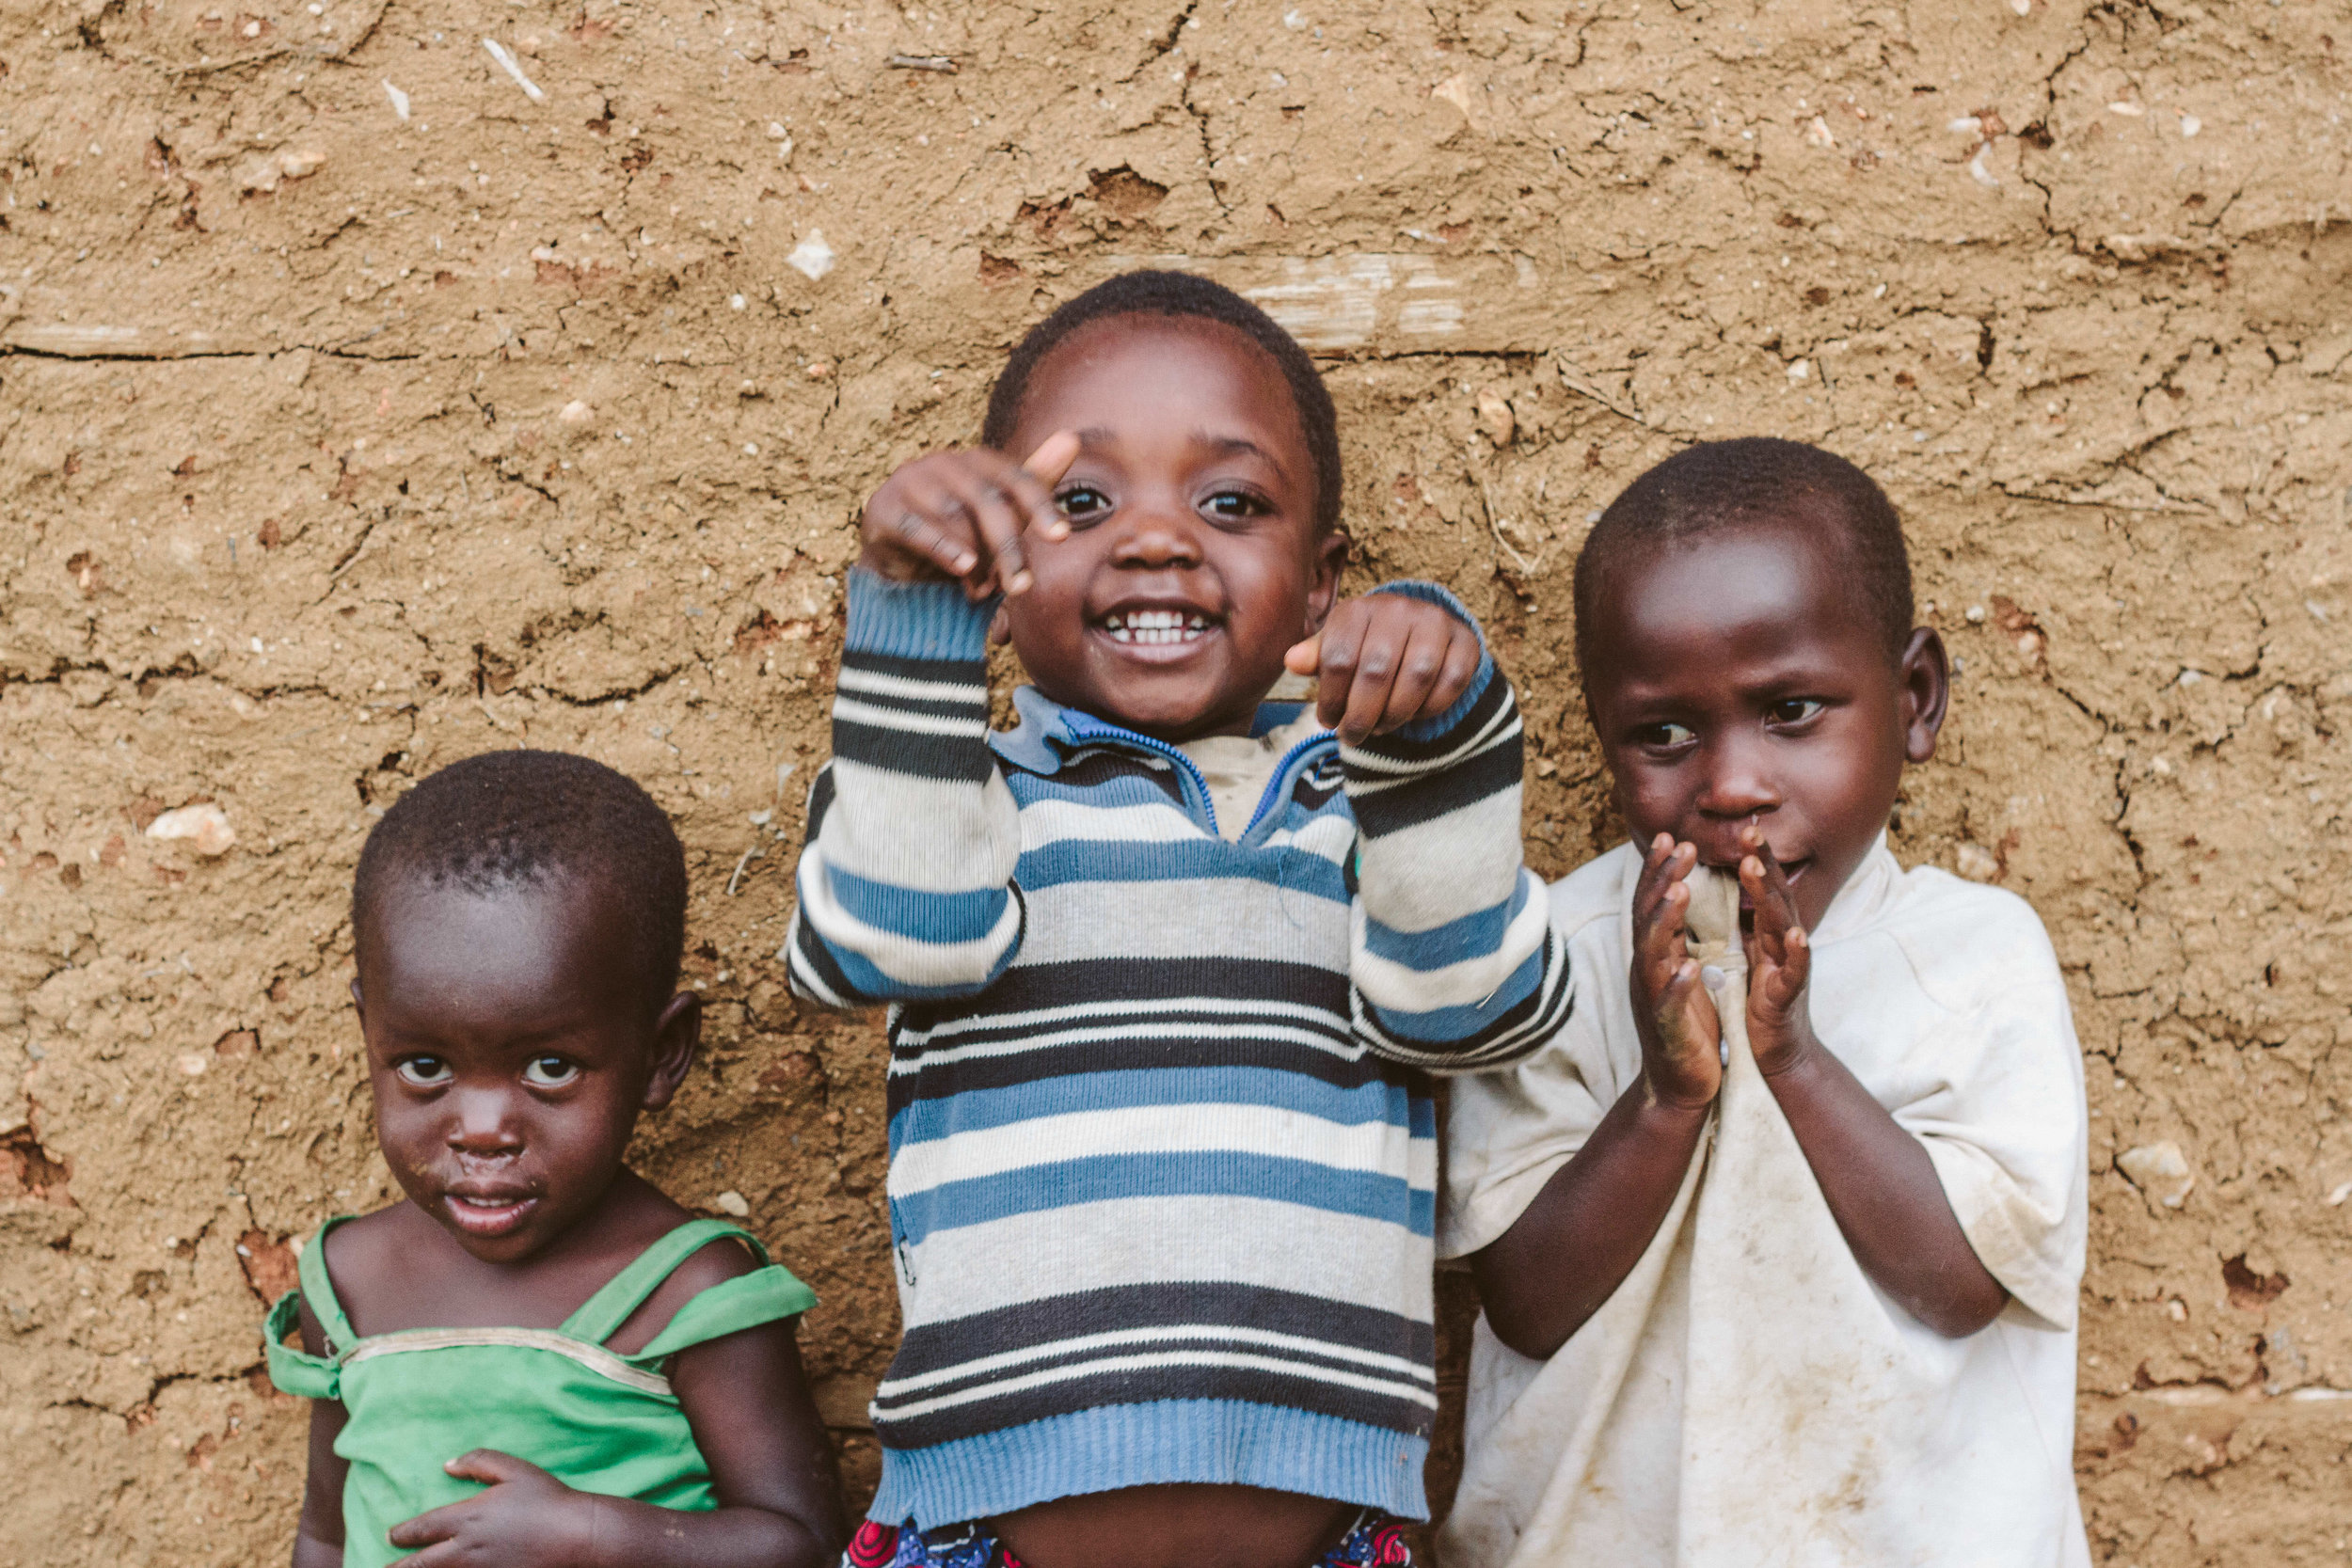 20,000 of the most vulnerable people directly benefitted from Zukuka Bora's harvest